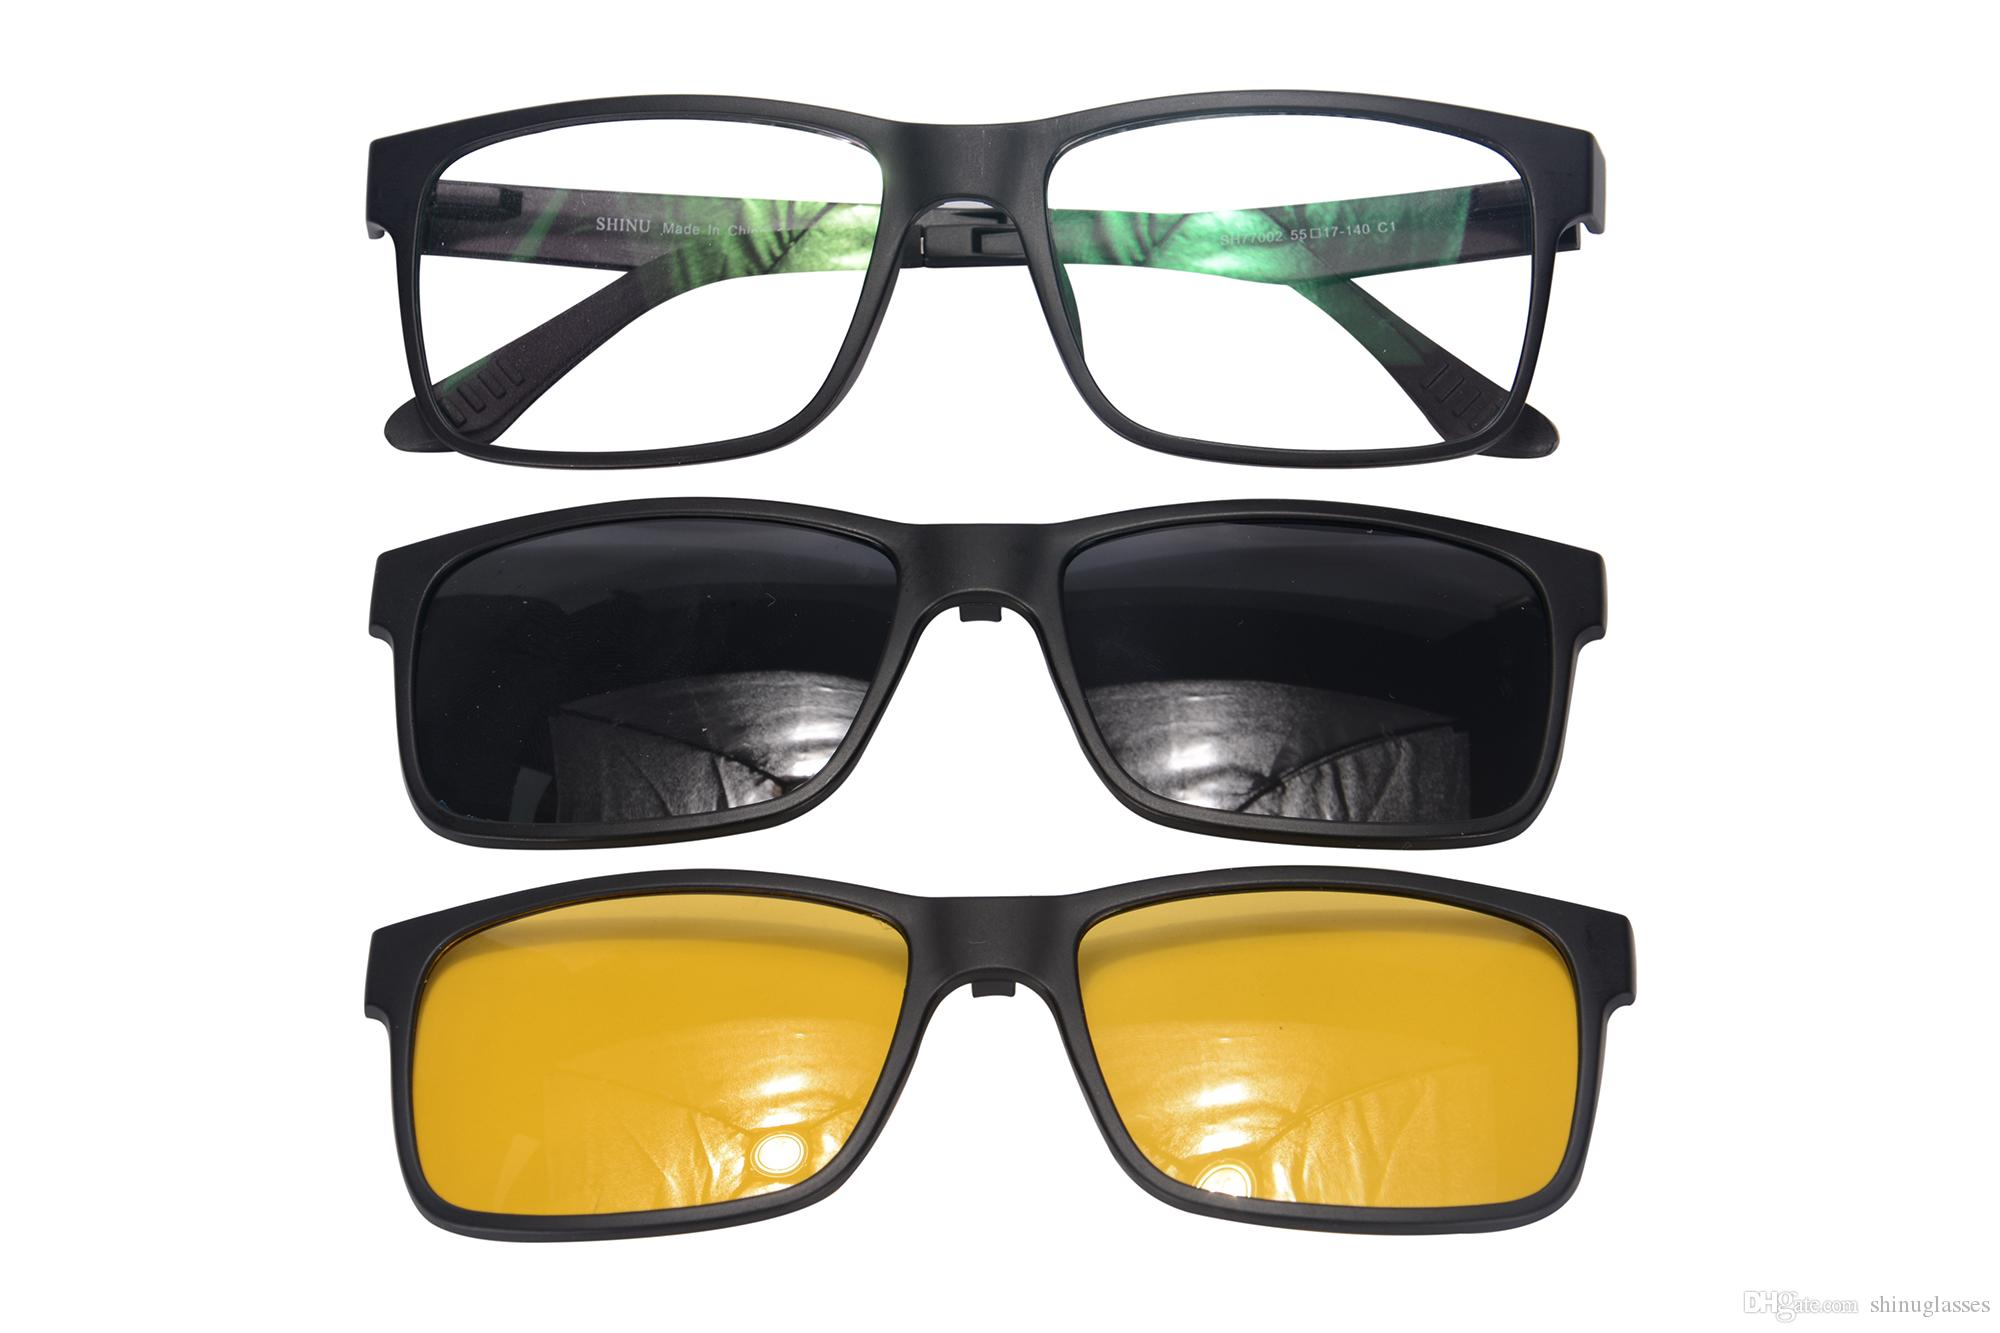 Sports frames for eyeglasses - Shinu Double Clips On Polarized Sunglasses Driving Cycling Sports Glasses Frames Sh77002